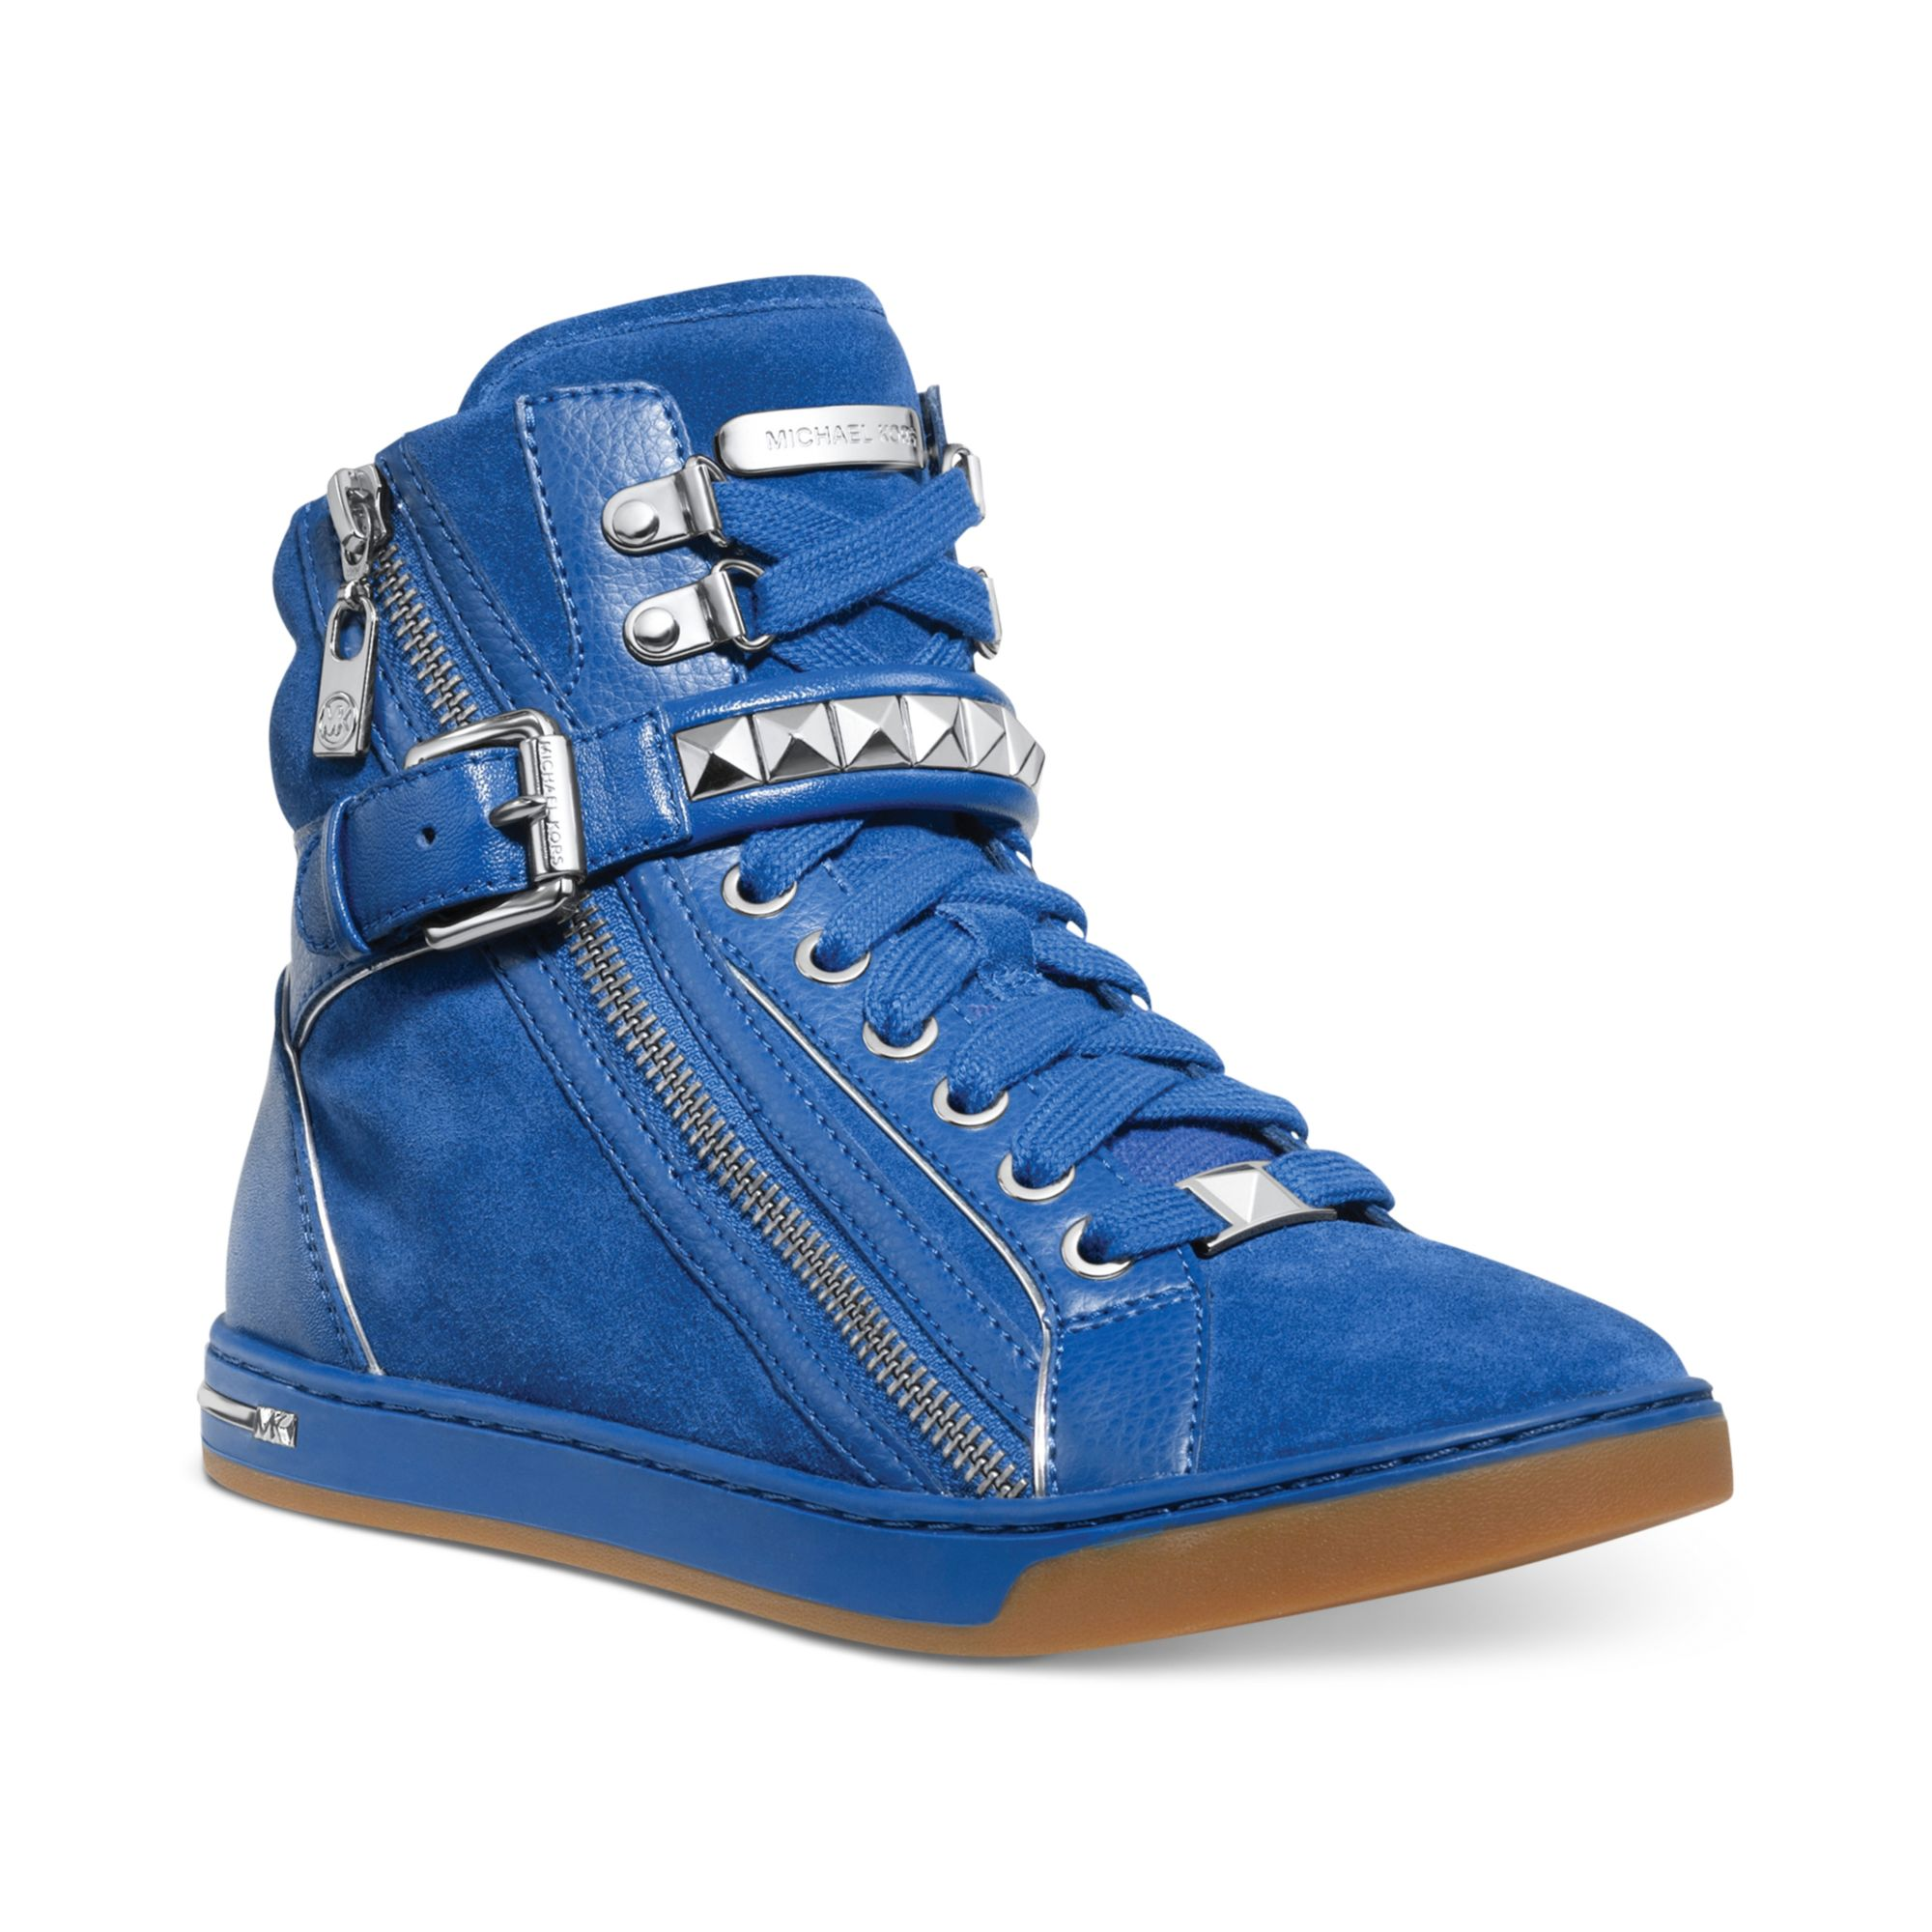 michael kors michael glam studded high top sneakers in blue lyst. Black Bedroom Furniture Sets. Home Design Ideas